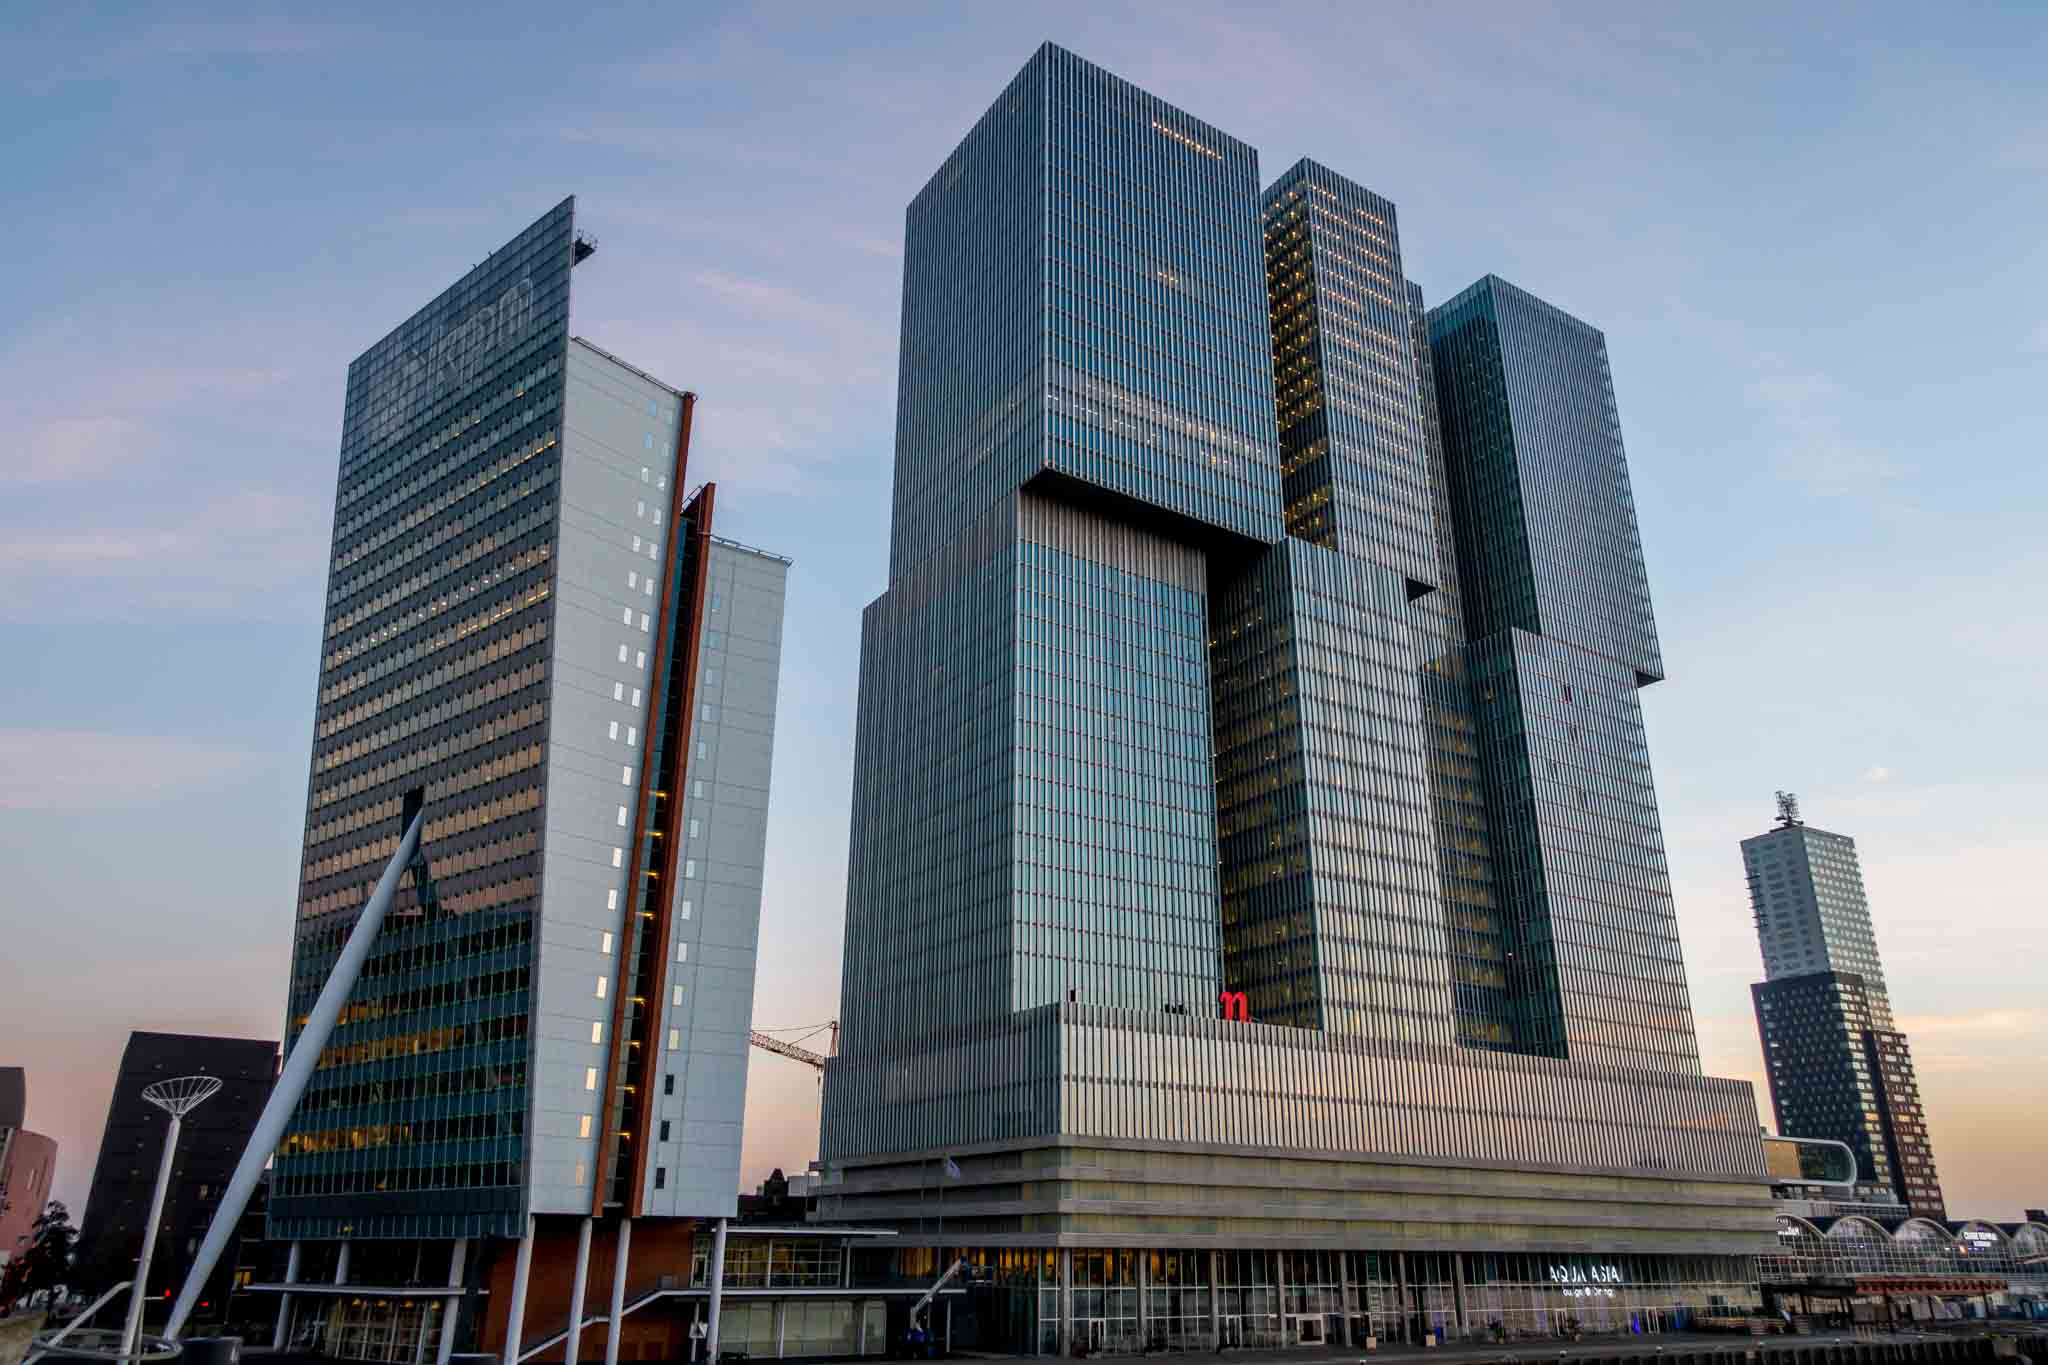 The tangled, gray towers of the De Rotterdam building in Rotterdam